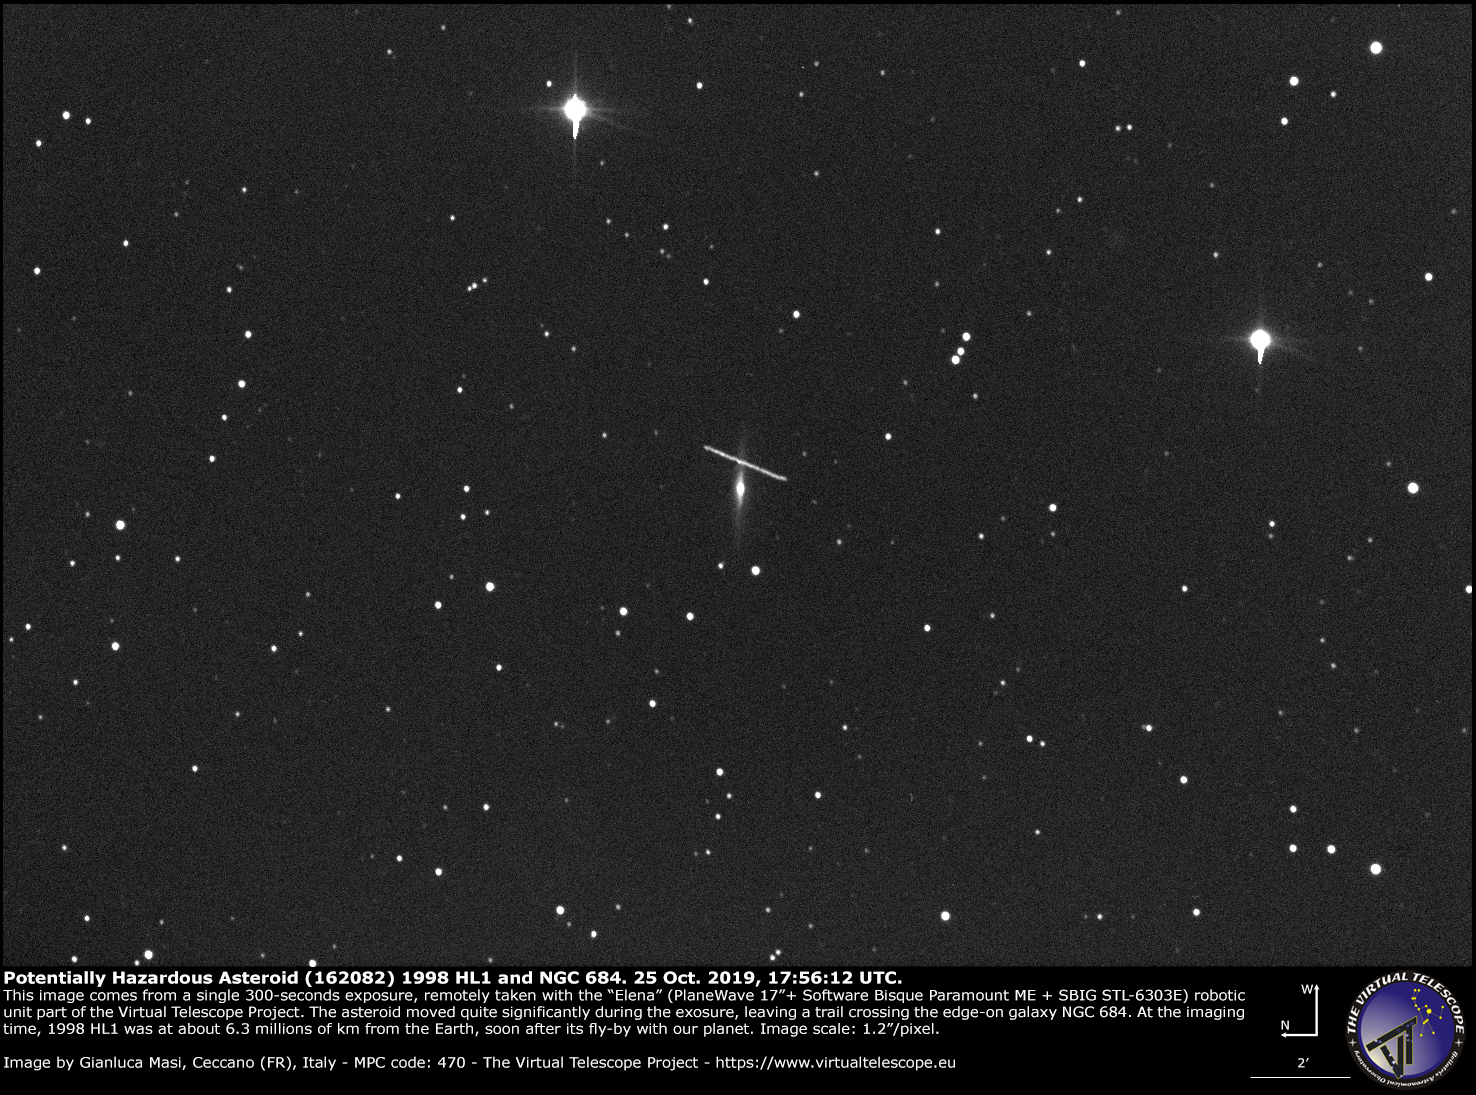 Potentially Hazardous Asteroid (162082) 1998 HL1 and galaxy NGC 684 - 25 Oct. 2019